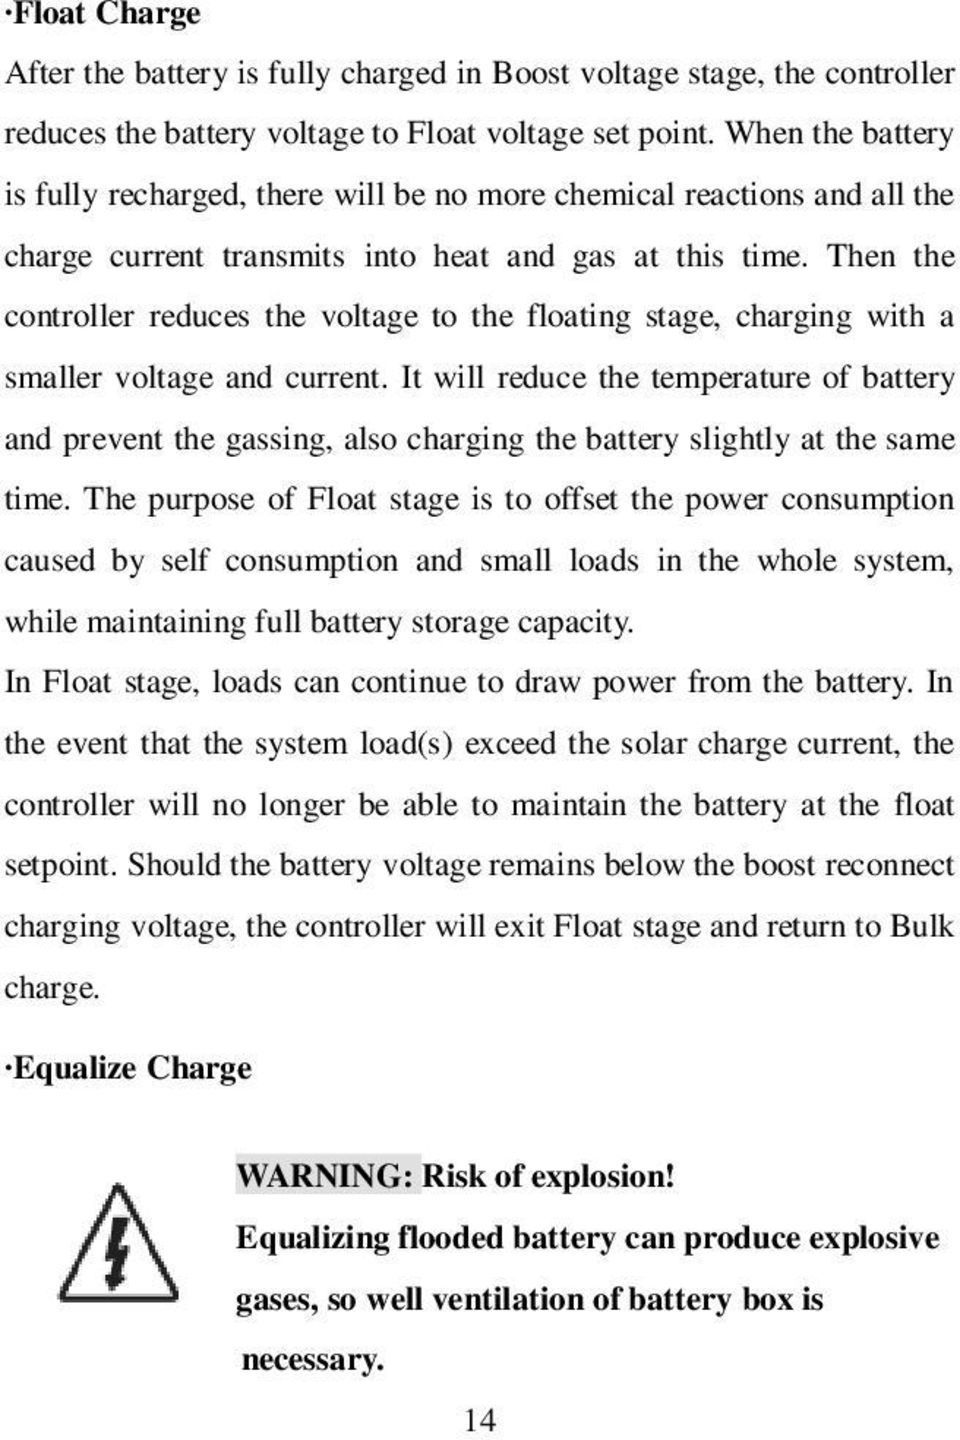 Then the controller reduces the voltage to the floating stage, charging with a smaller voltage and current.